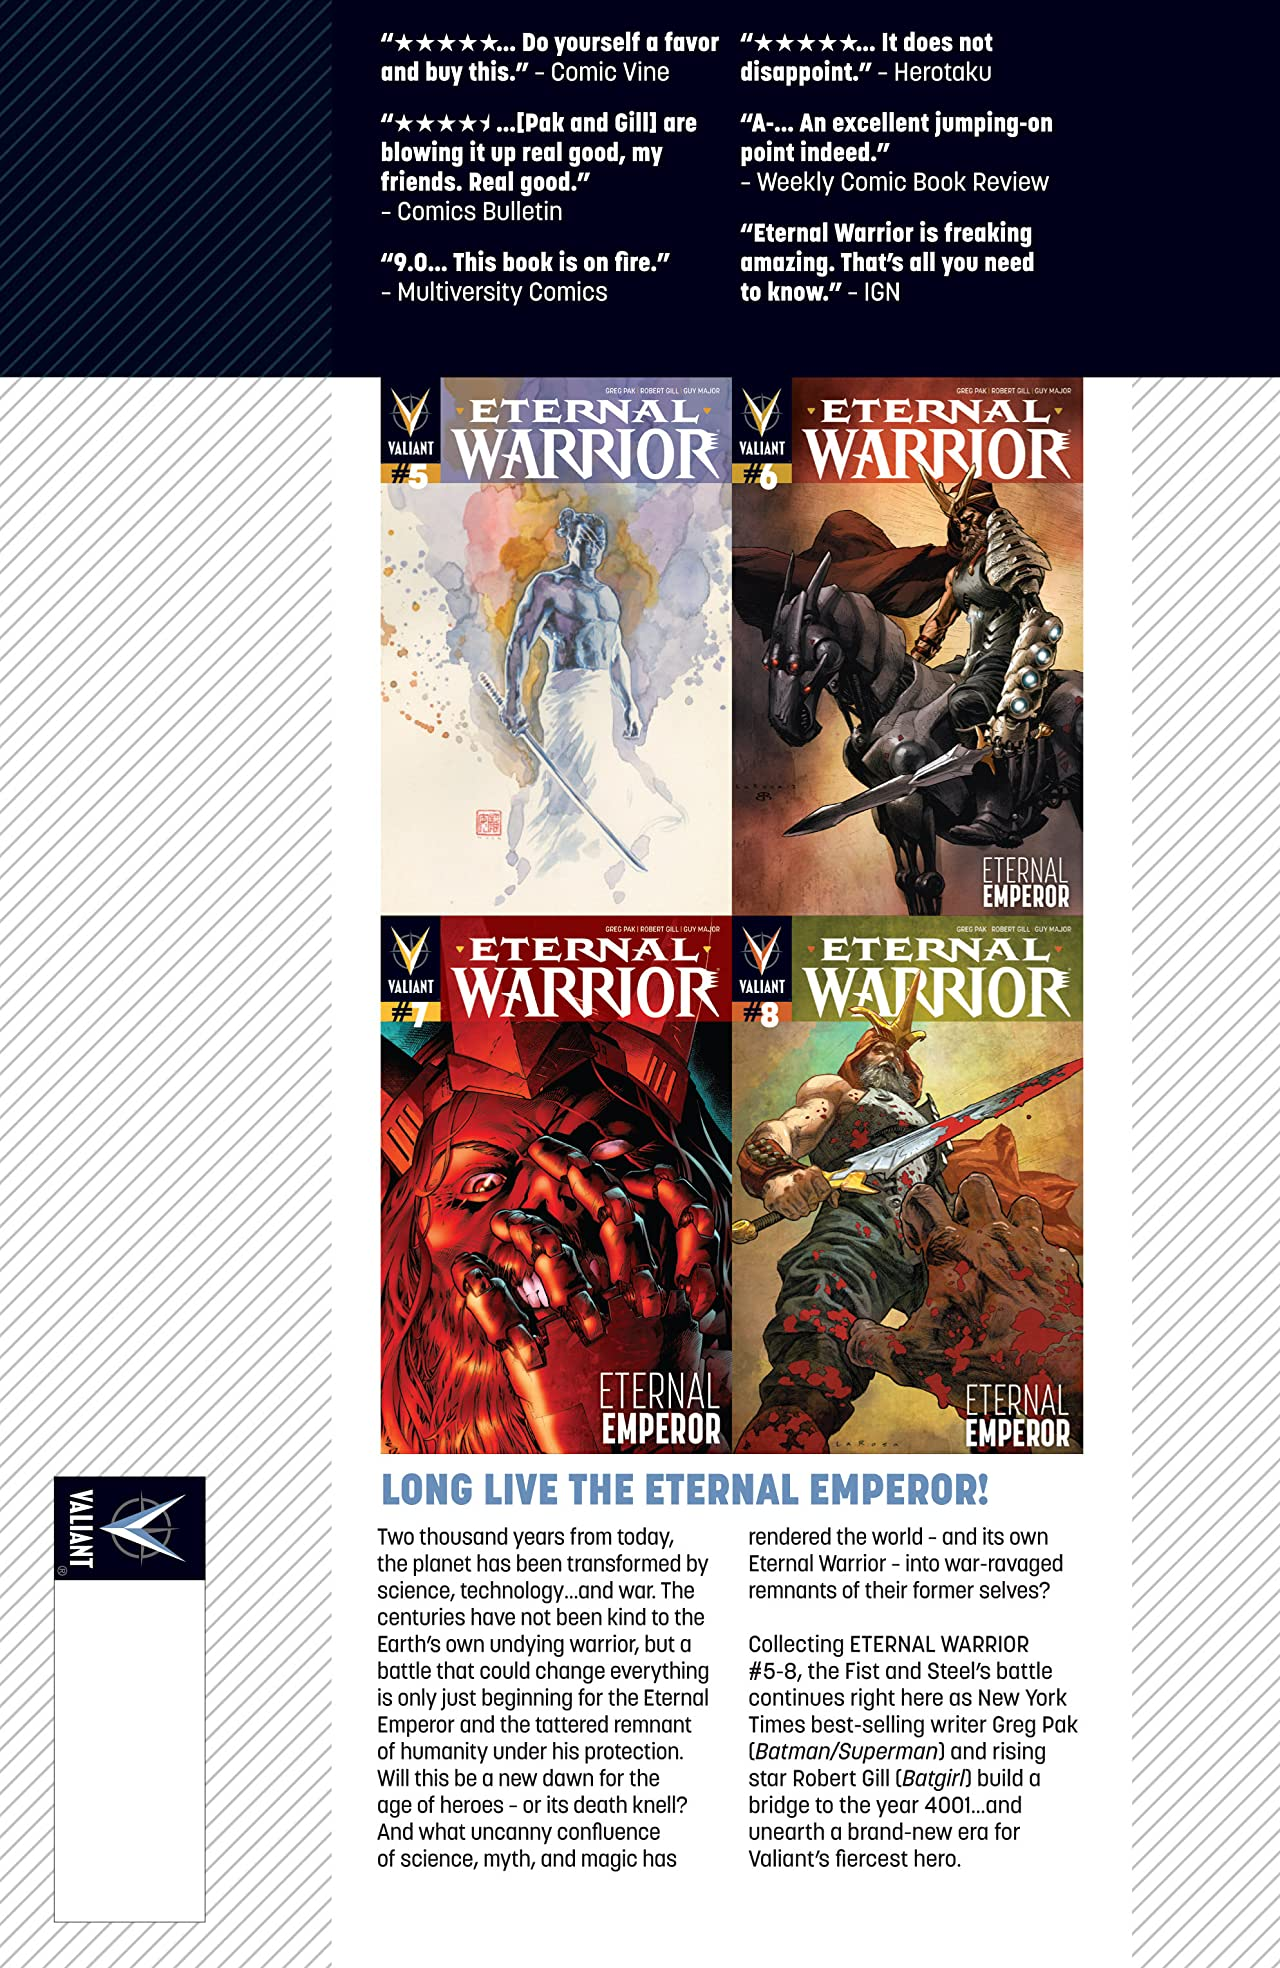 Eternal Warrior Vol. 2: Eternal Emperor